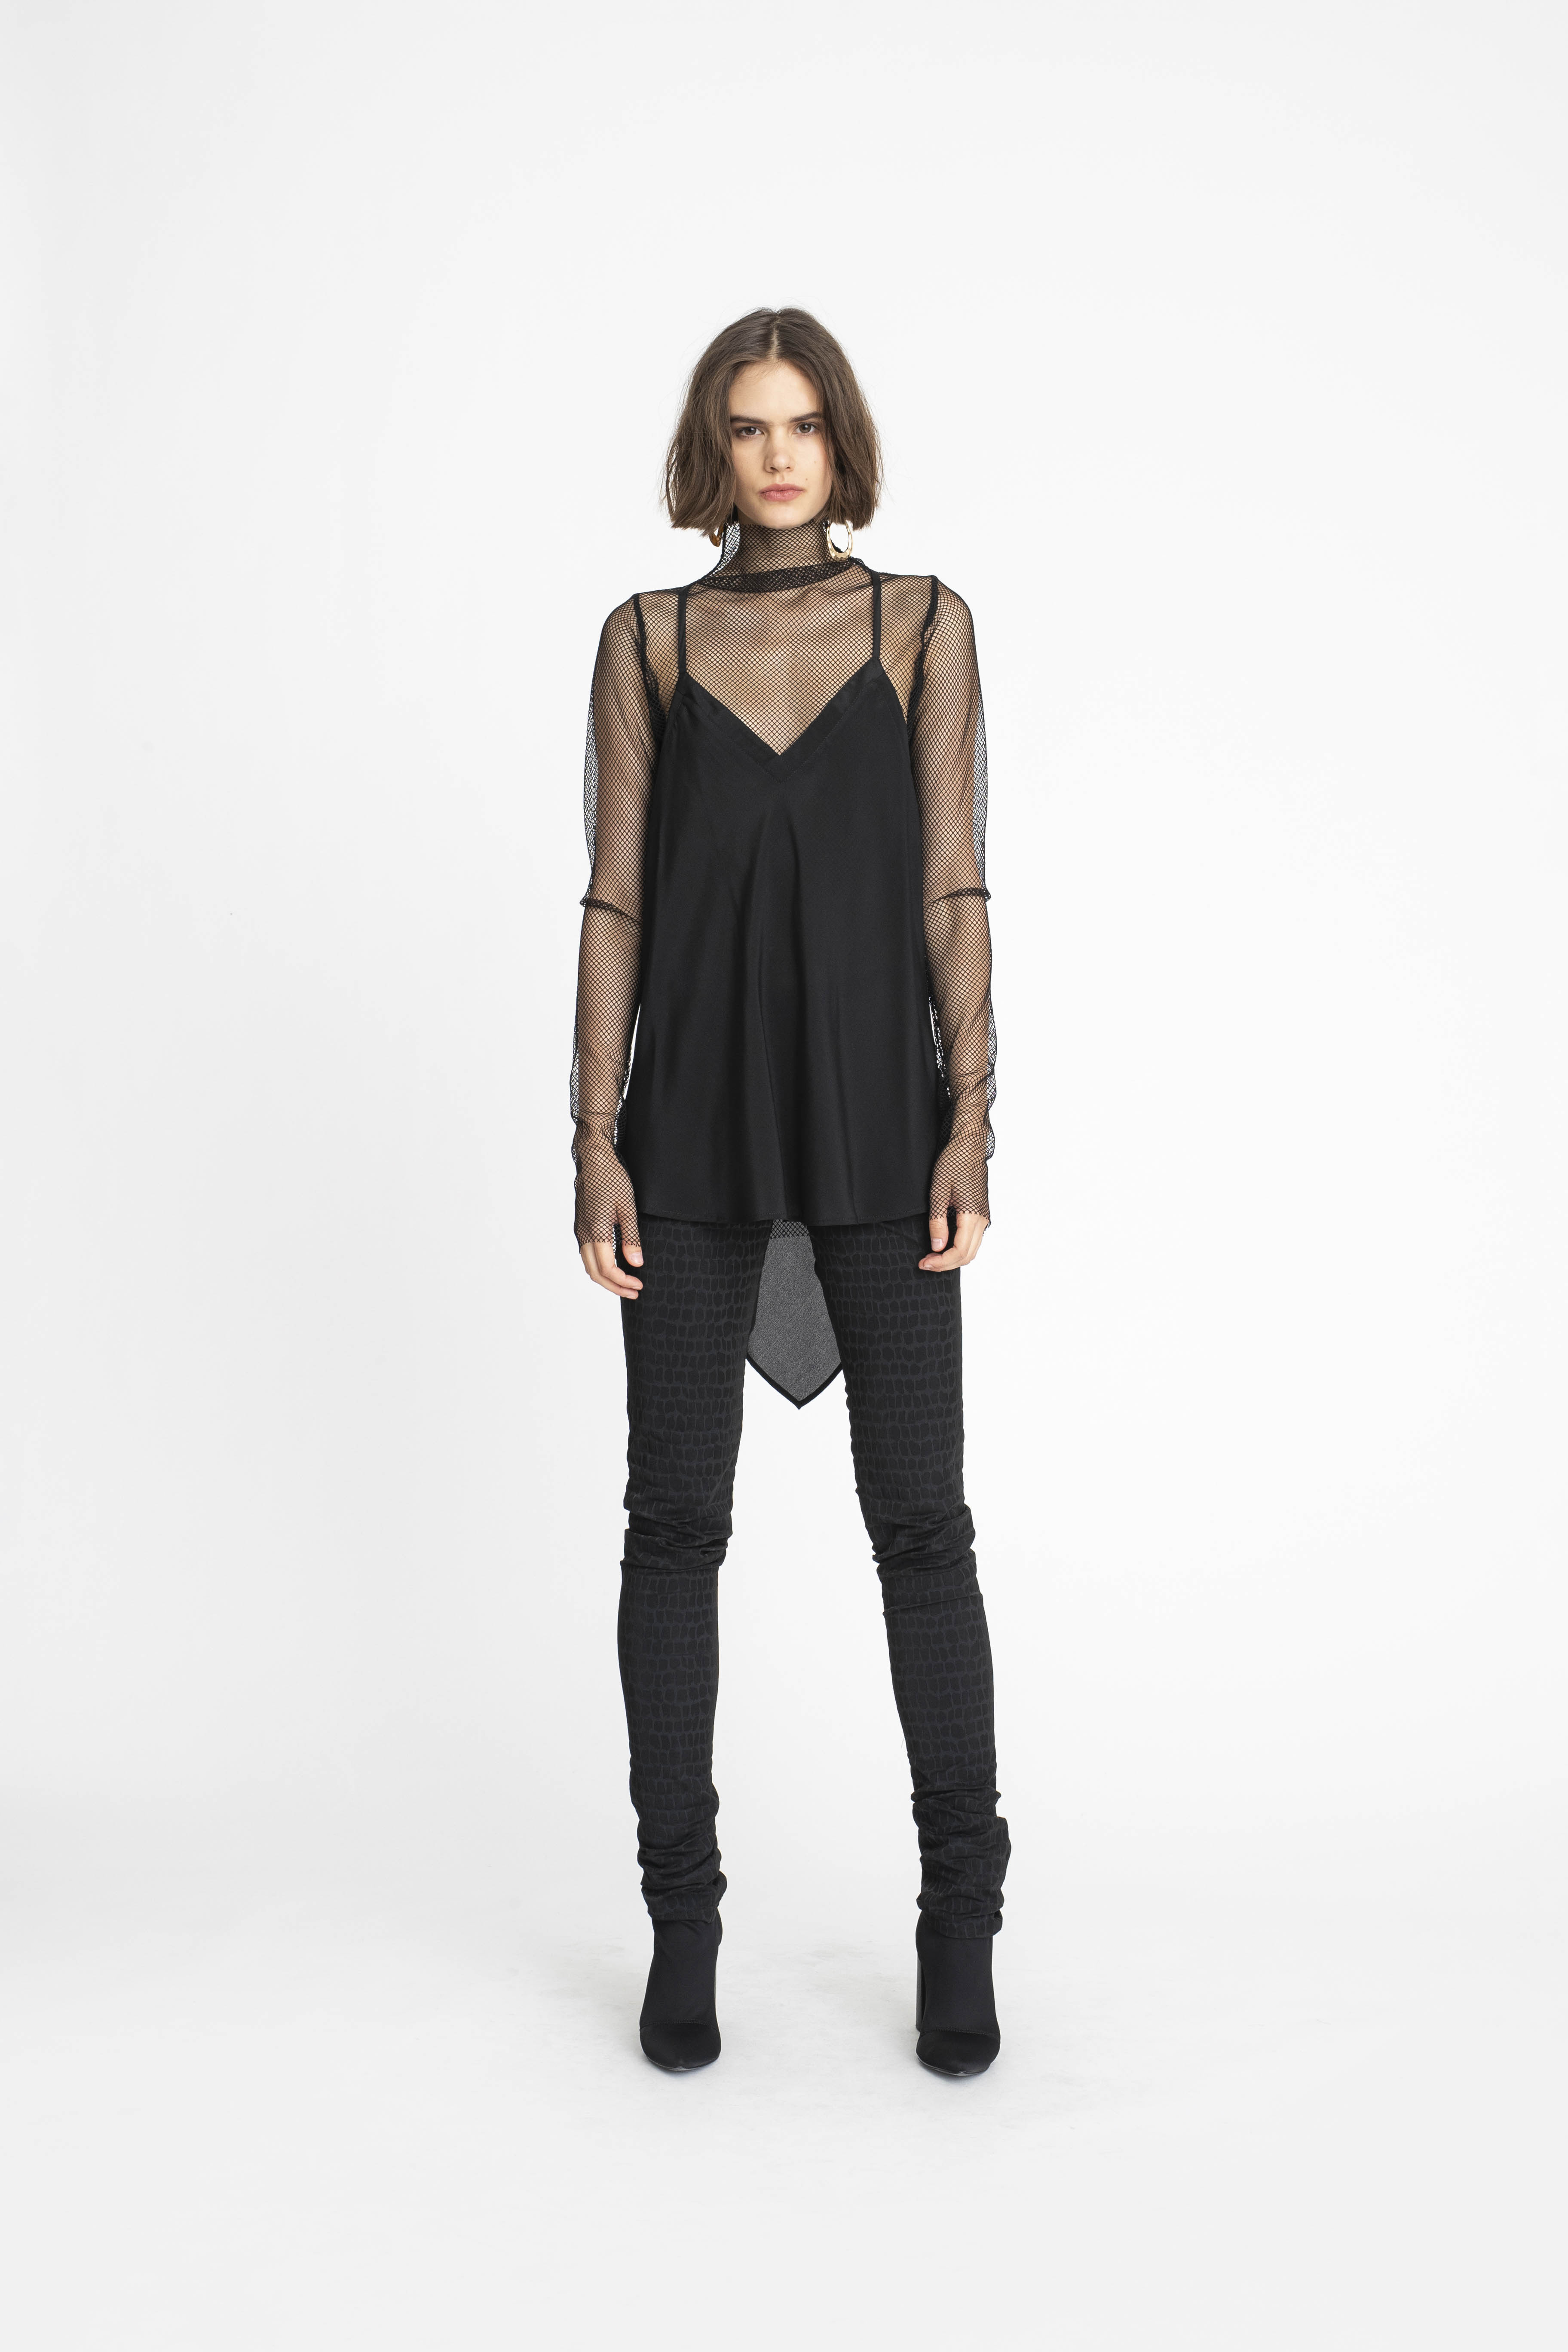 Undone-Tunic_Inherent-Tank_Integral-Pant_TaylorBoutique_AW19_L69_1675 2